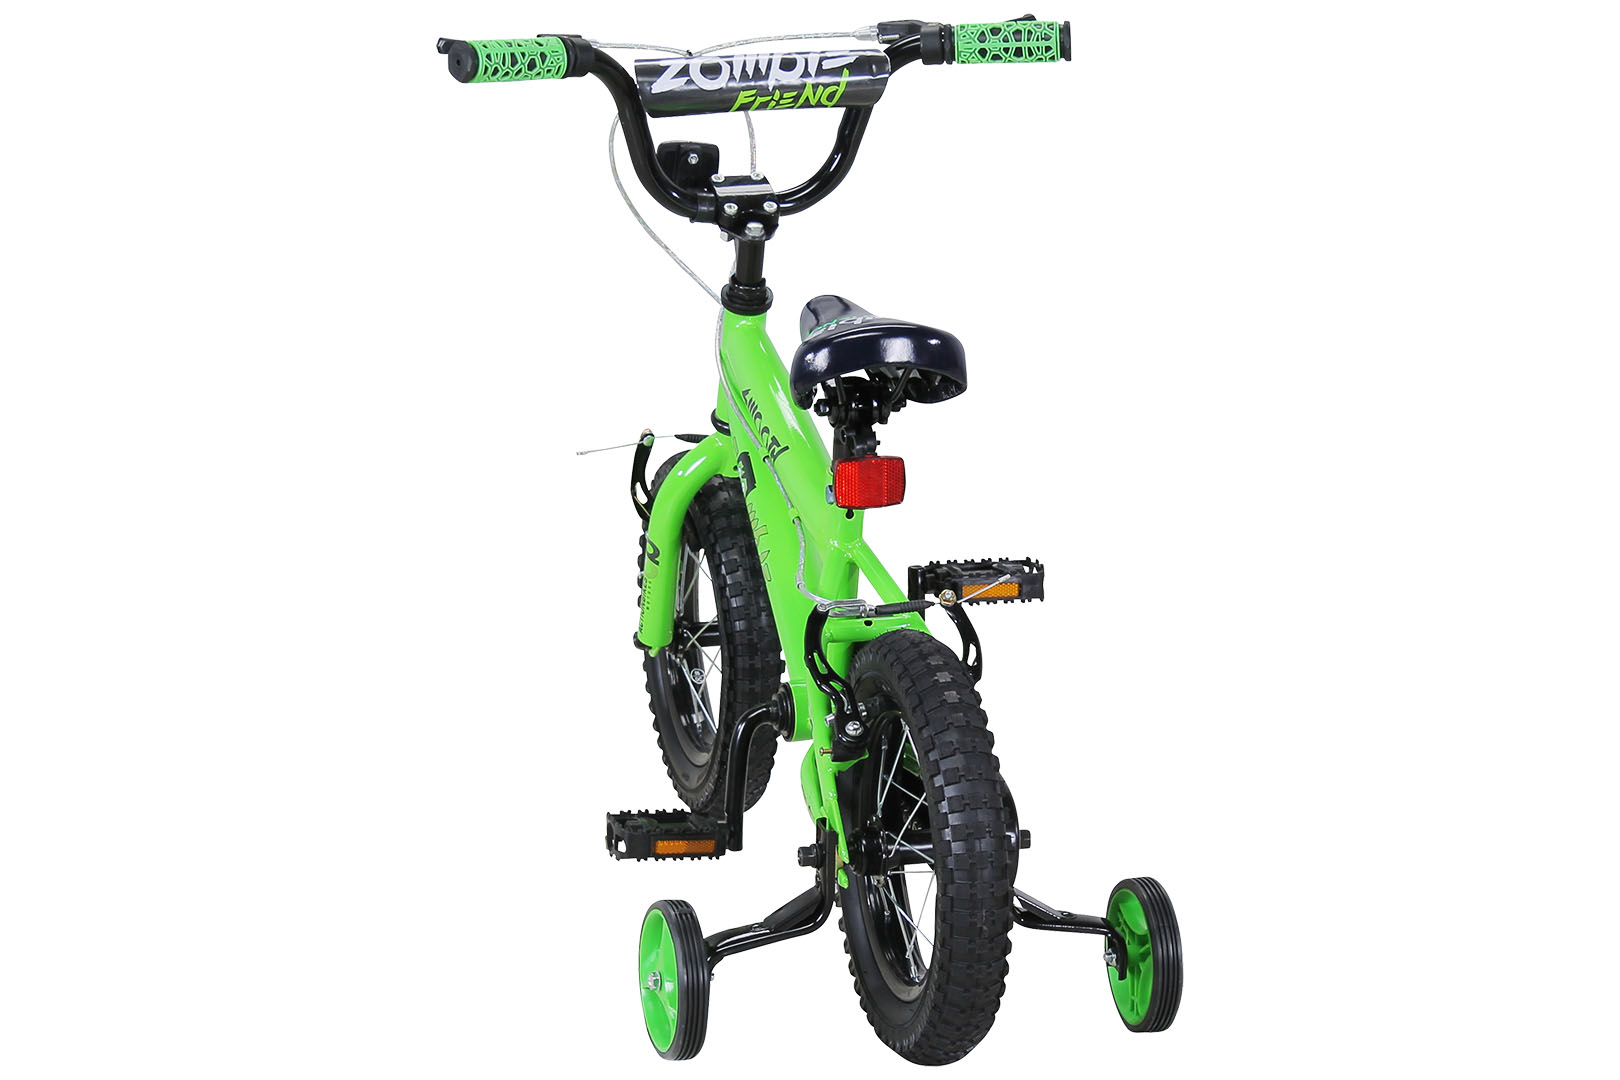 kinder fahrrad zombie 12 zoll kinderfahrrad gr n ebay. Black Bedroom Furniture Sets. Home Design Ideas